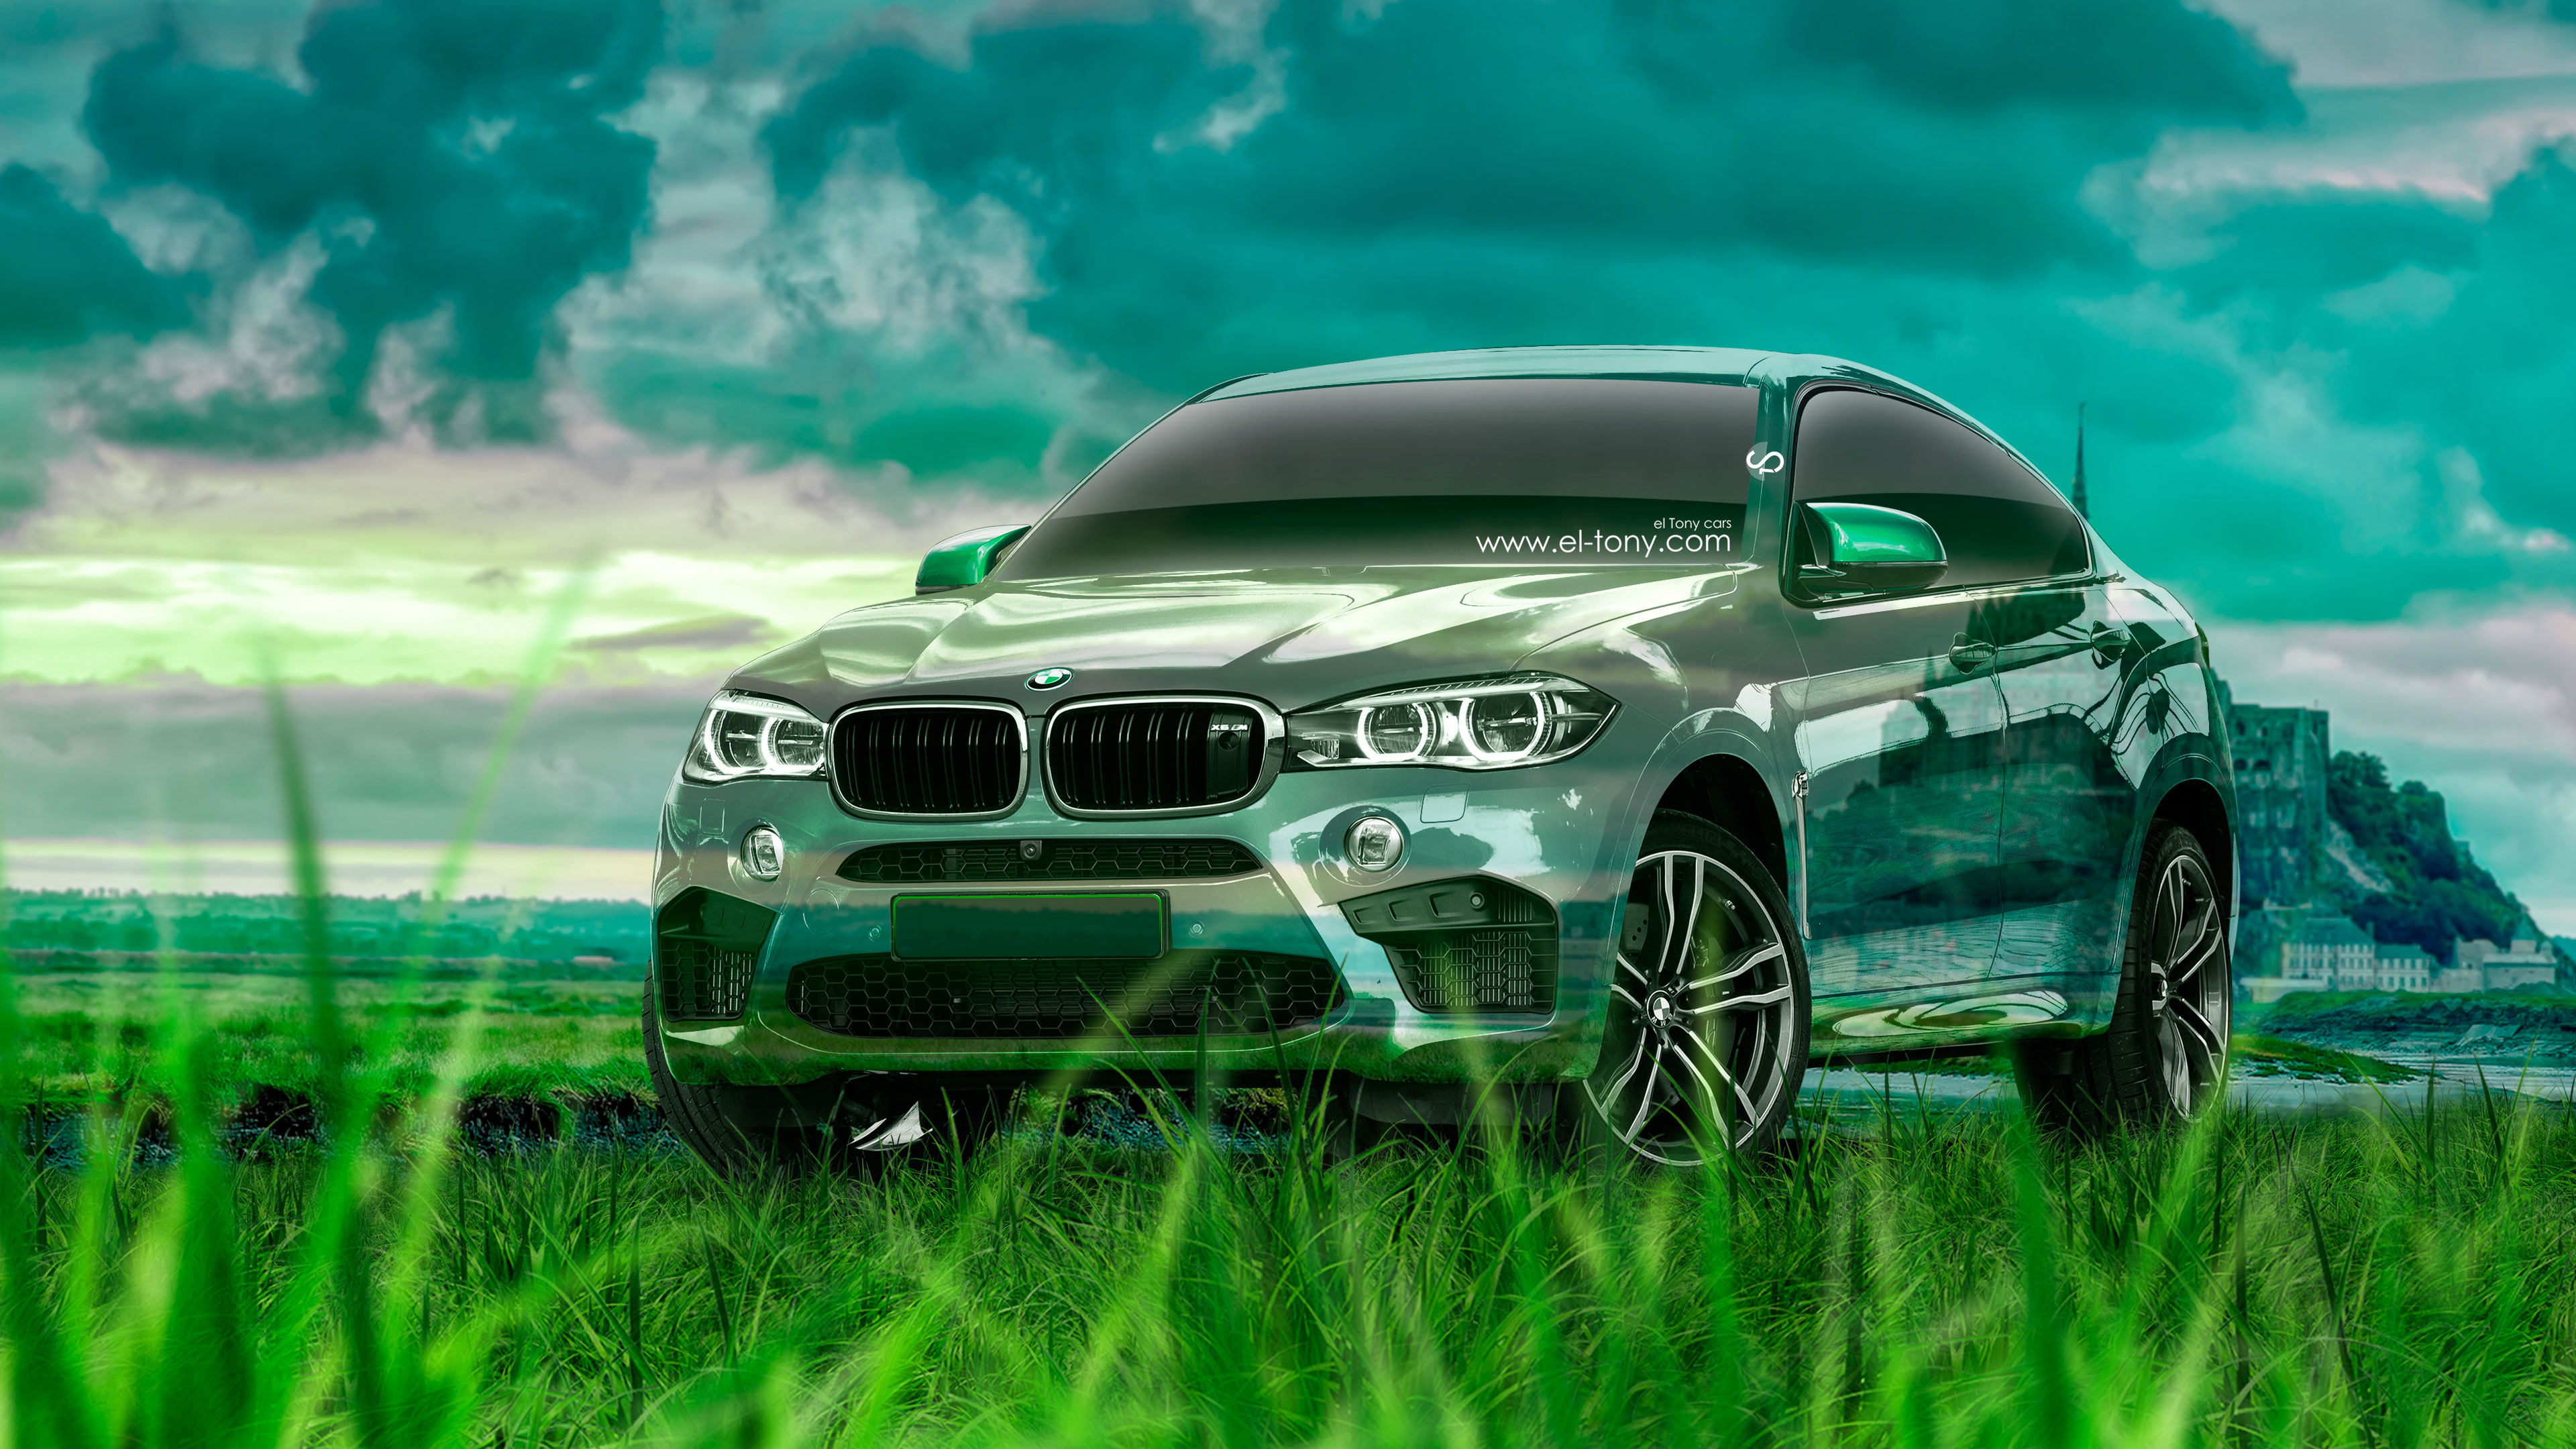 Captivating Ordinaire BMW X6 M Tuning Crossover Crystal Nature Car